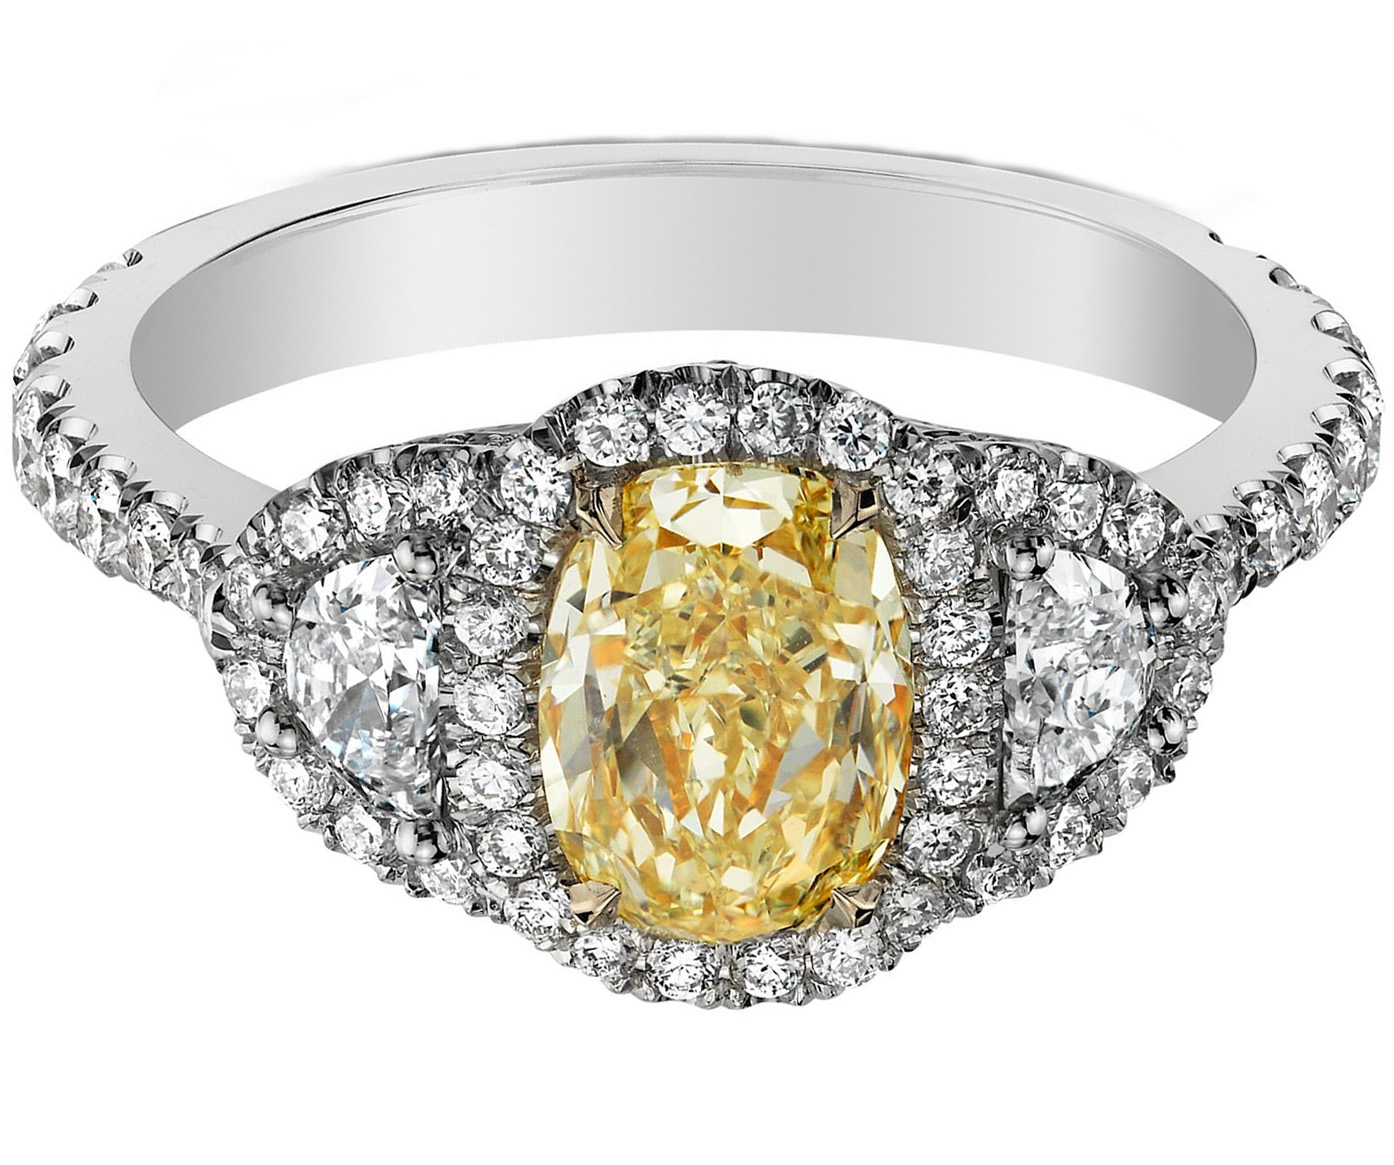 Fancy Yellow Oval Diamond Micro pave Halo Ring in 14K White Gold